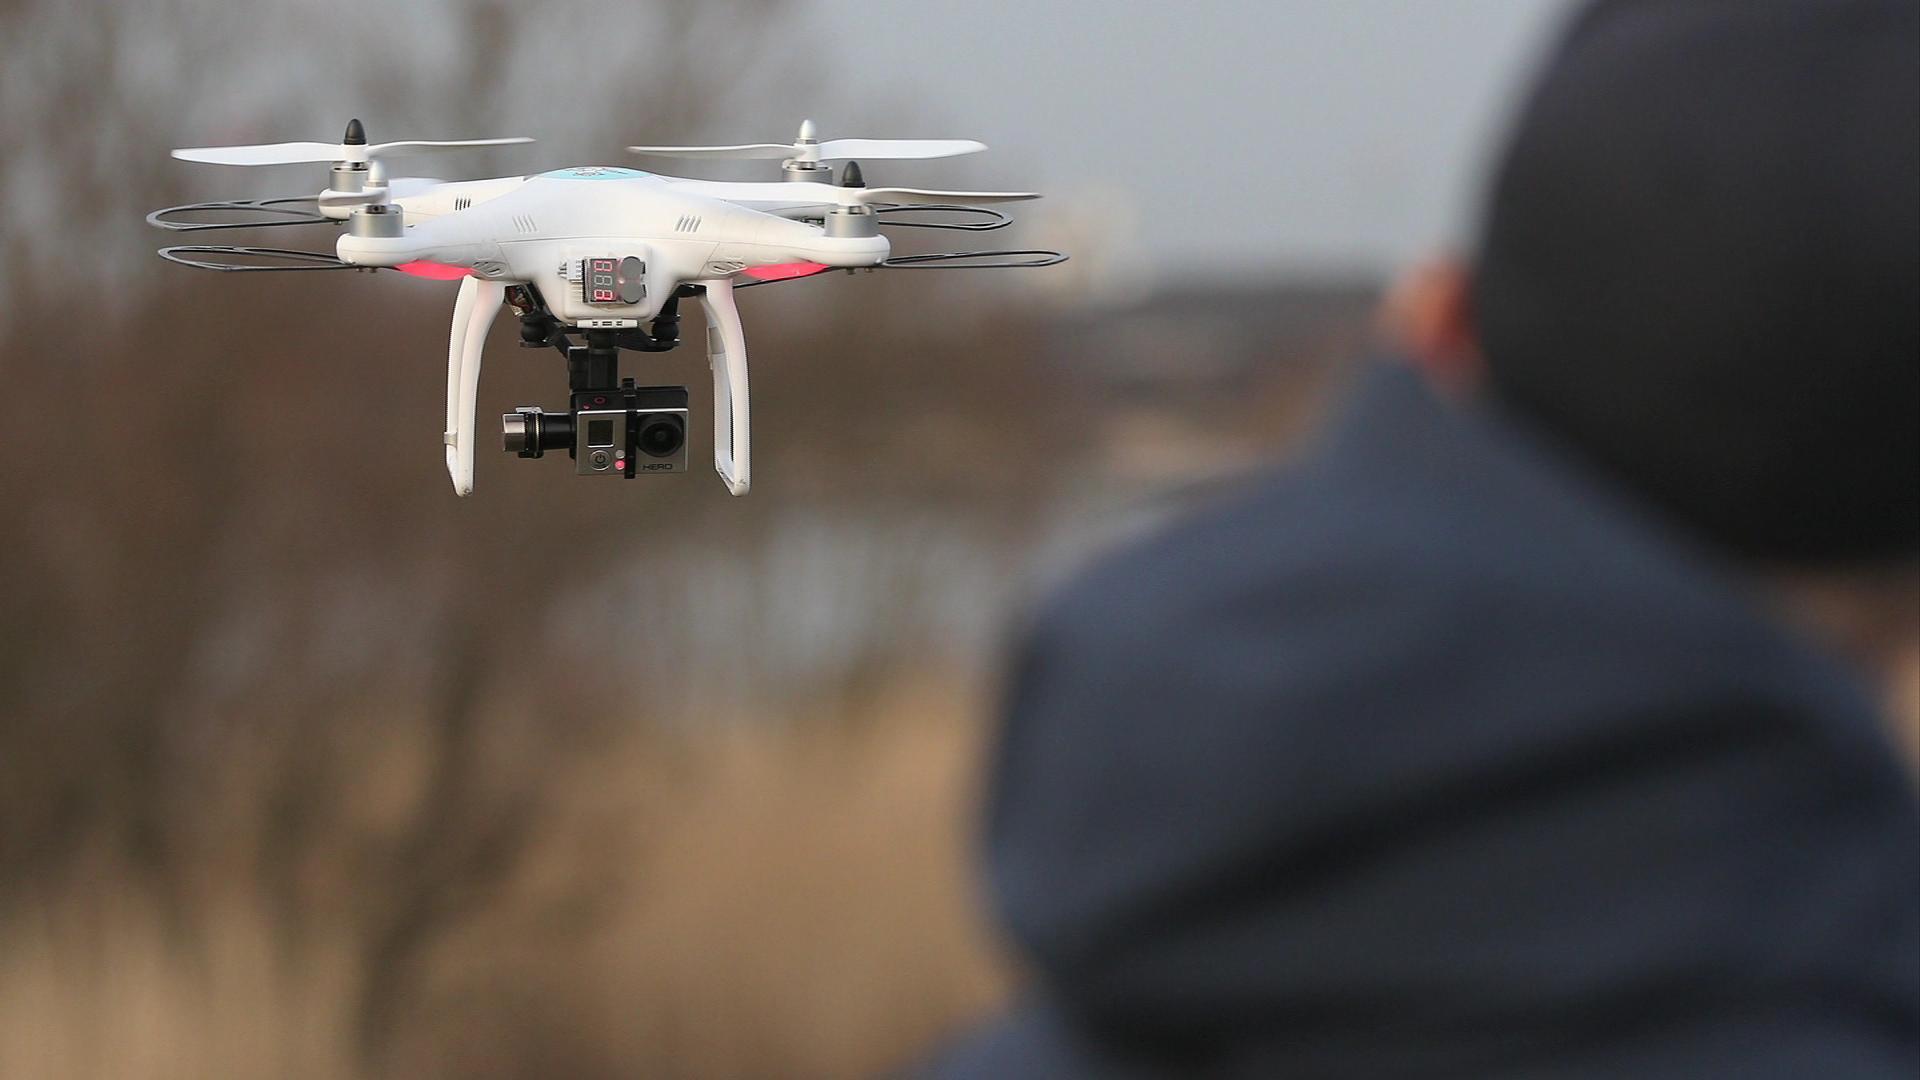 As drones are gifted, the FAA issues a warning